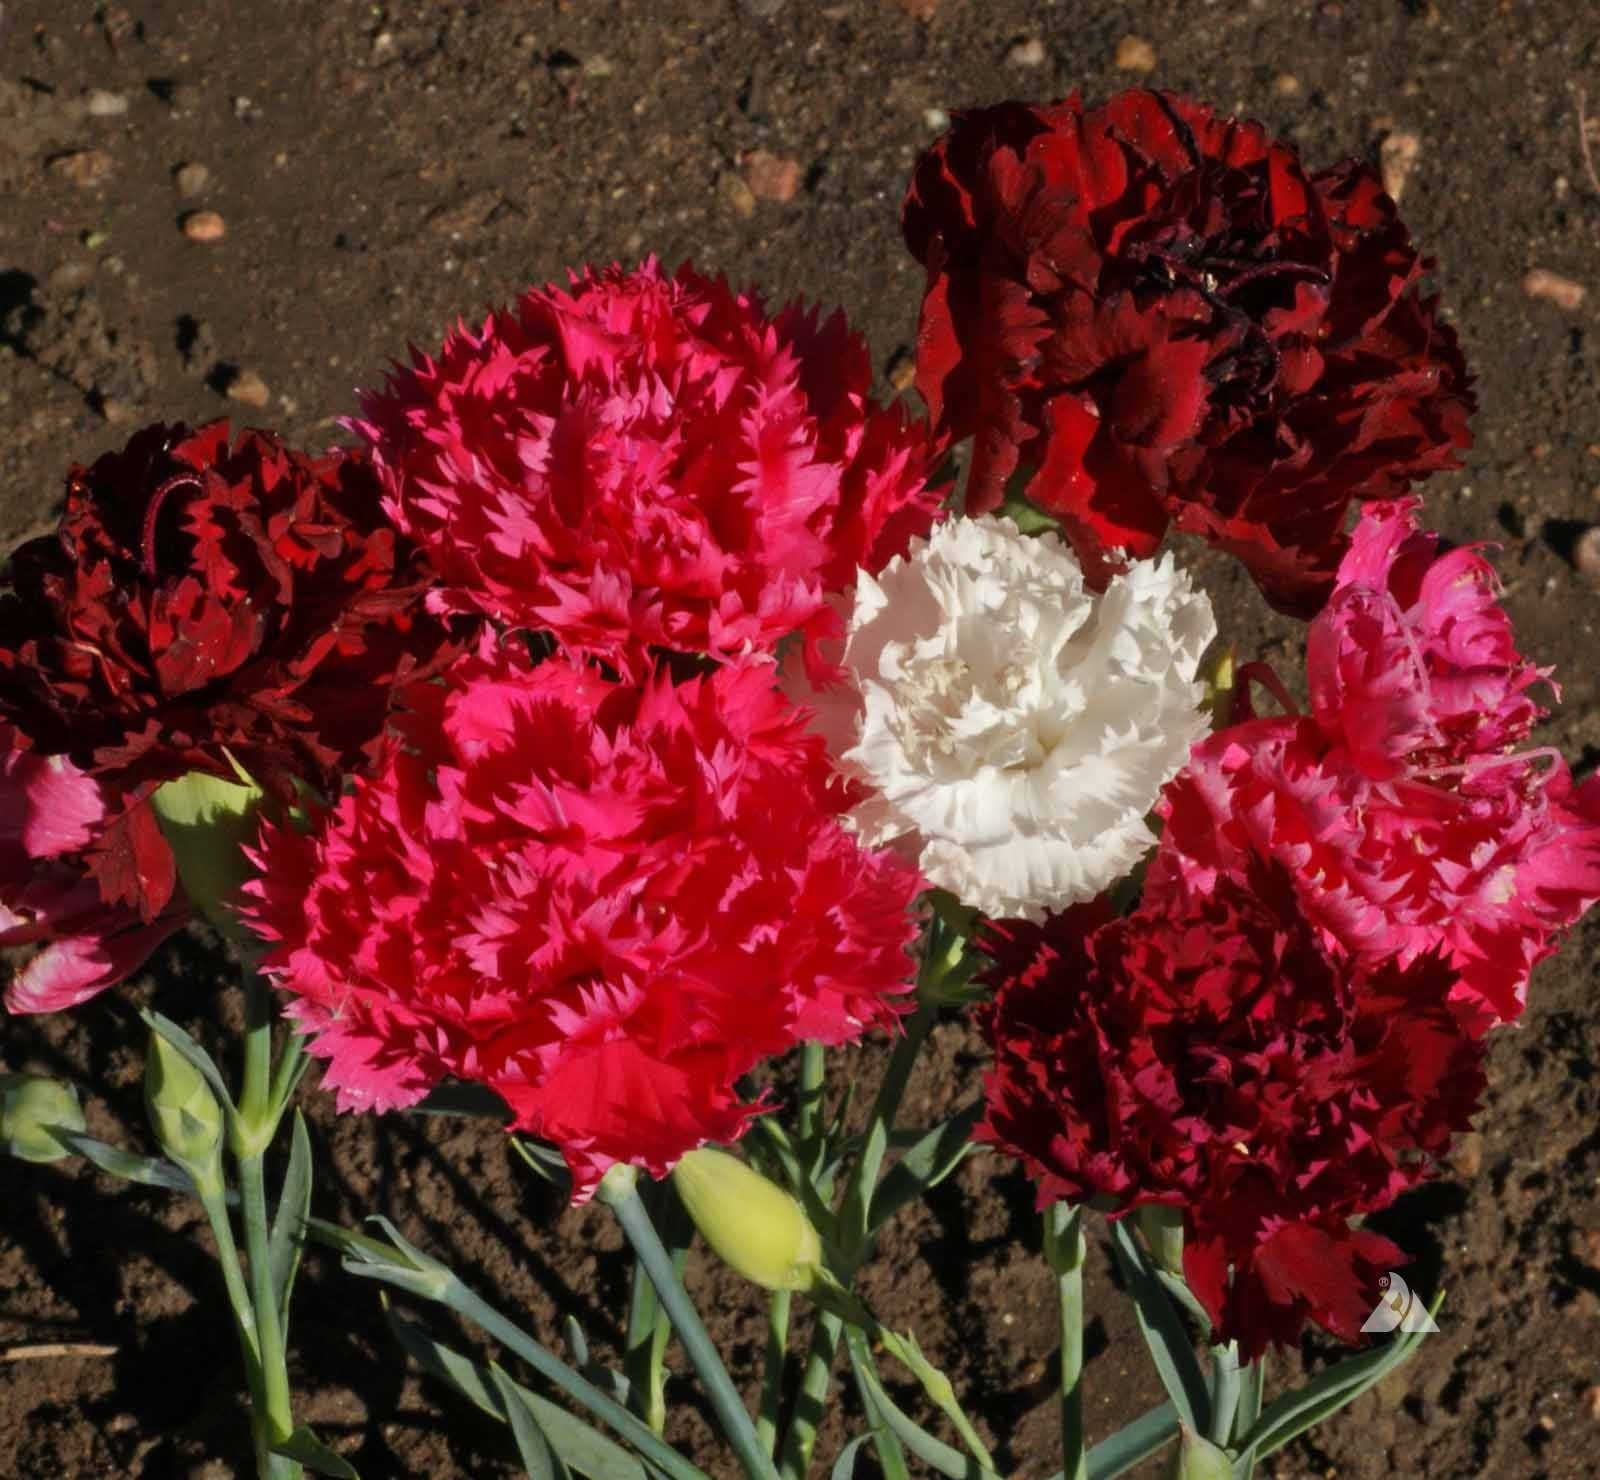 Clove Carnation Chabaud Mix (Dianthus caryophyllus) | Applewood Seed